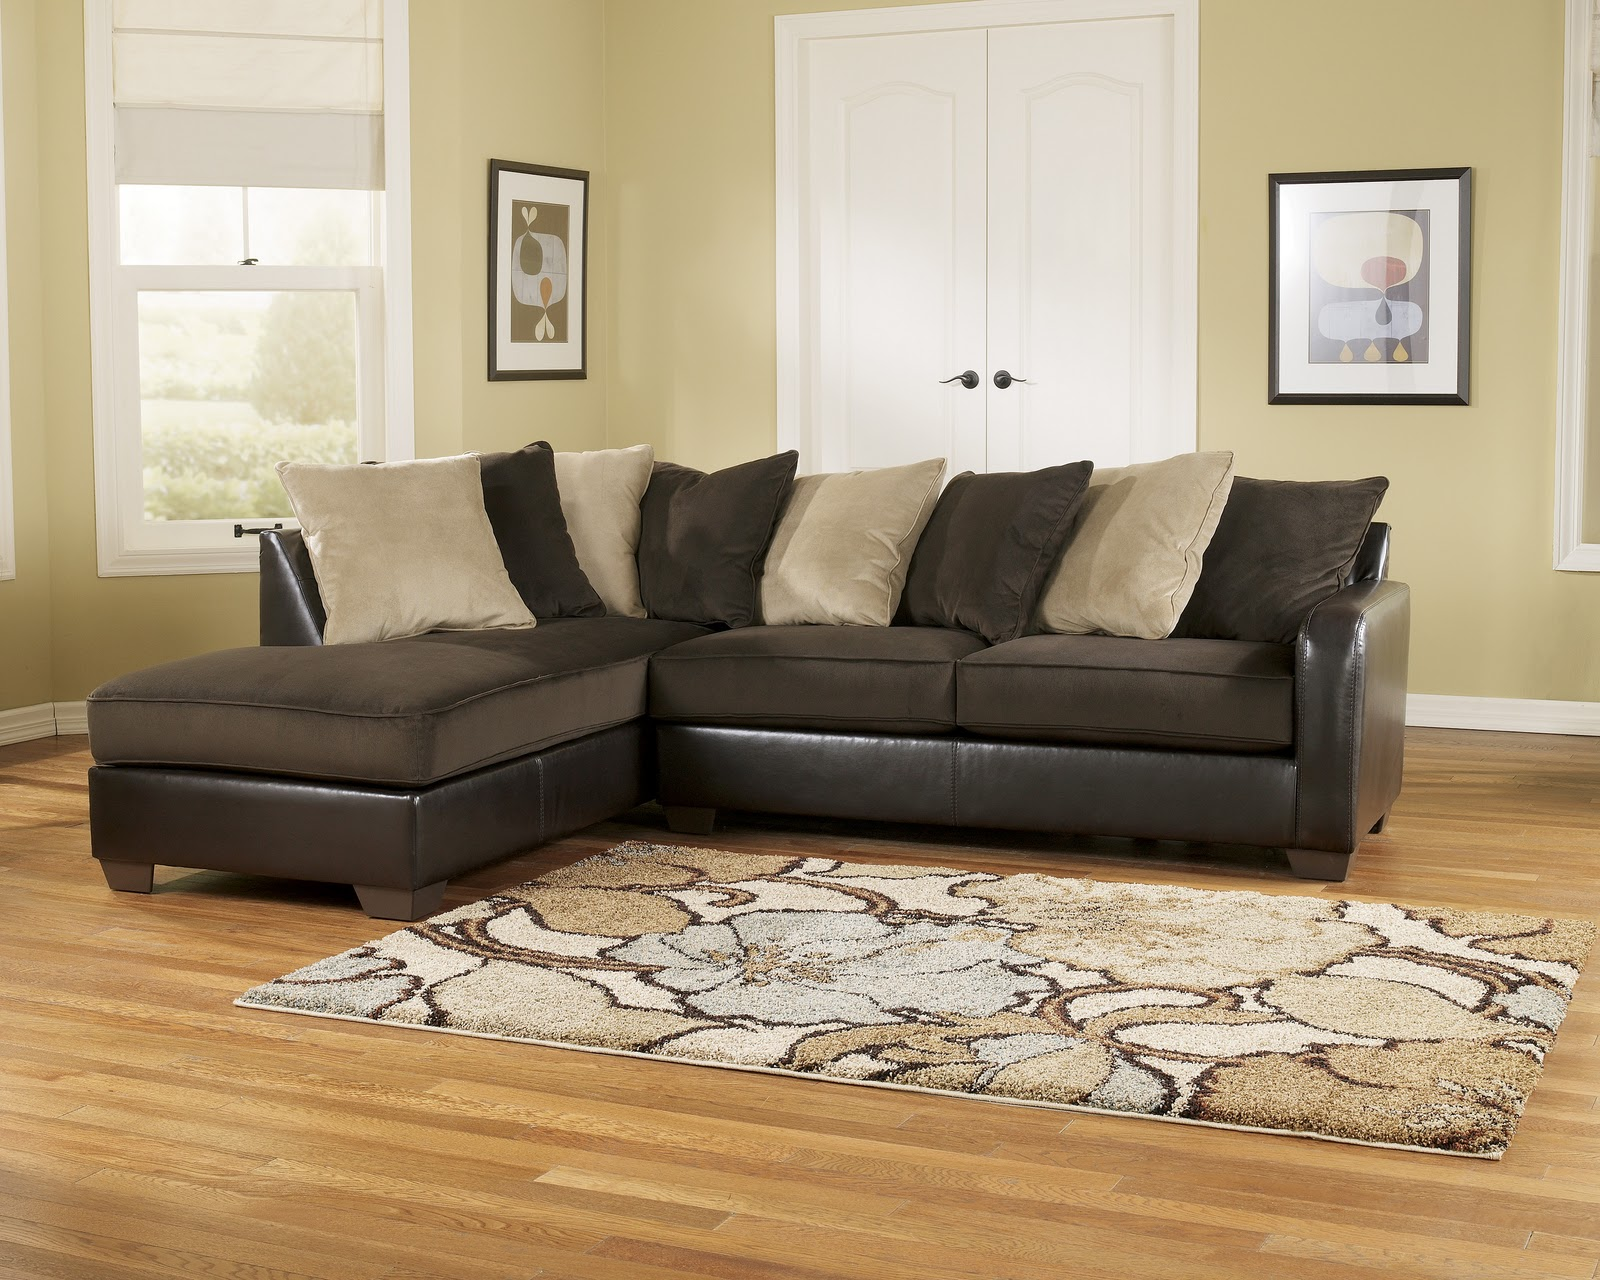 Living Room | Royal Furniture Outlet